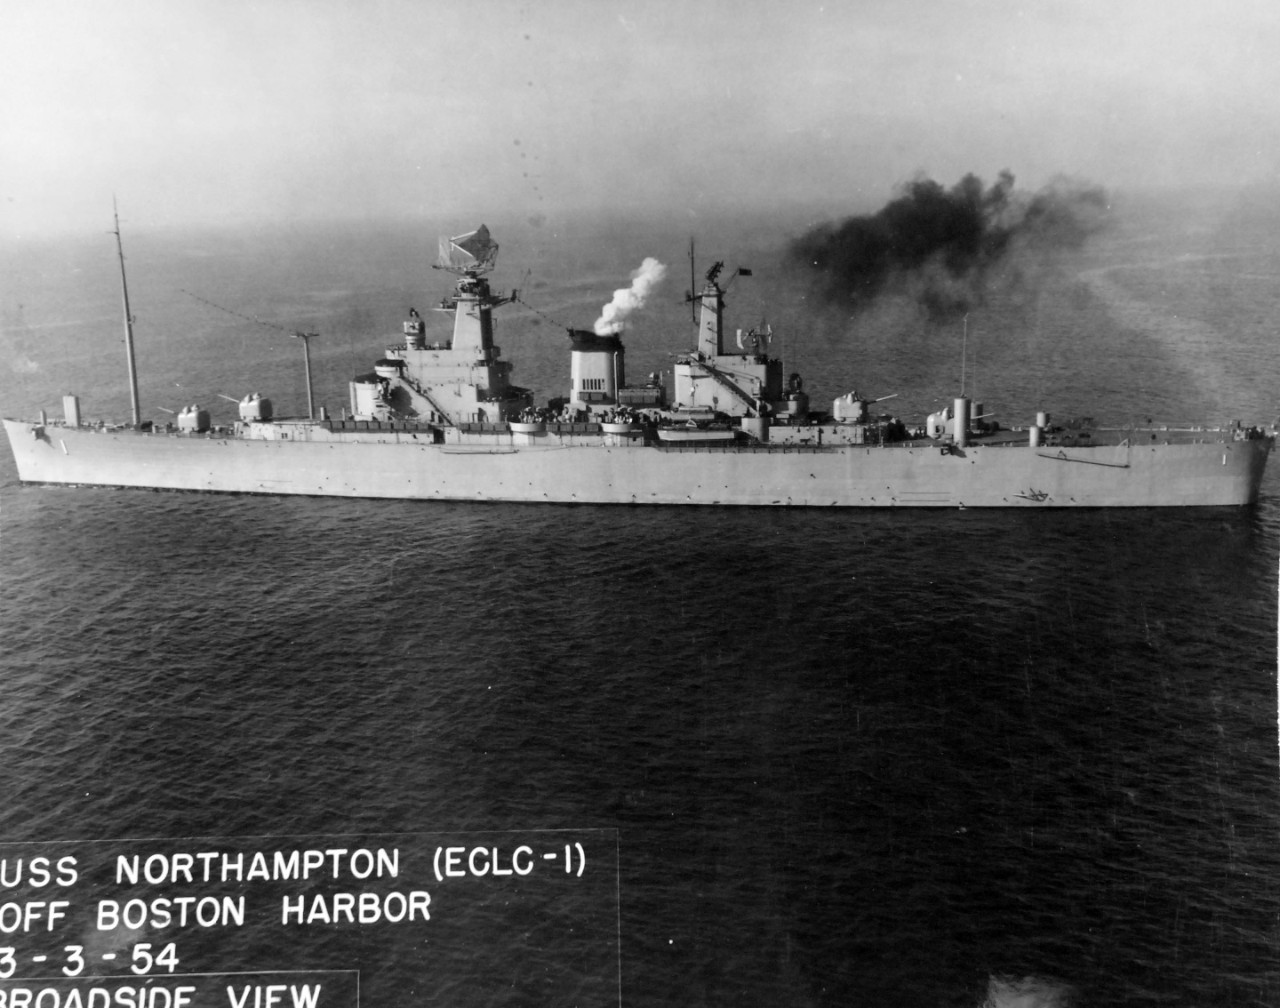 80-G-634775:  USS Northampton (CLC-1), 1954.   Northampton off Boston Harbor, Massachusetts, broadside view, March 3, 1954.   Official U.S. Navy Photograph, now in the collections of the National Archives.  Same as 80-G-199190 (2017/11/15).